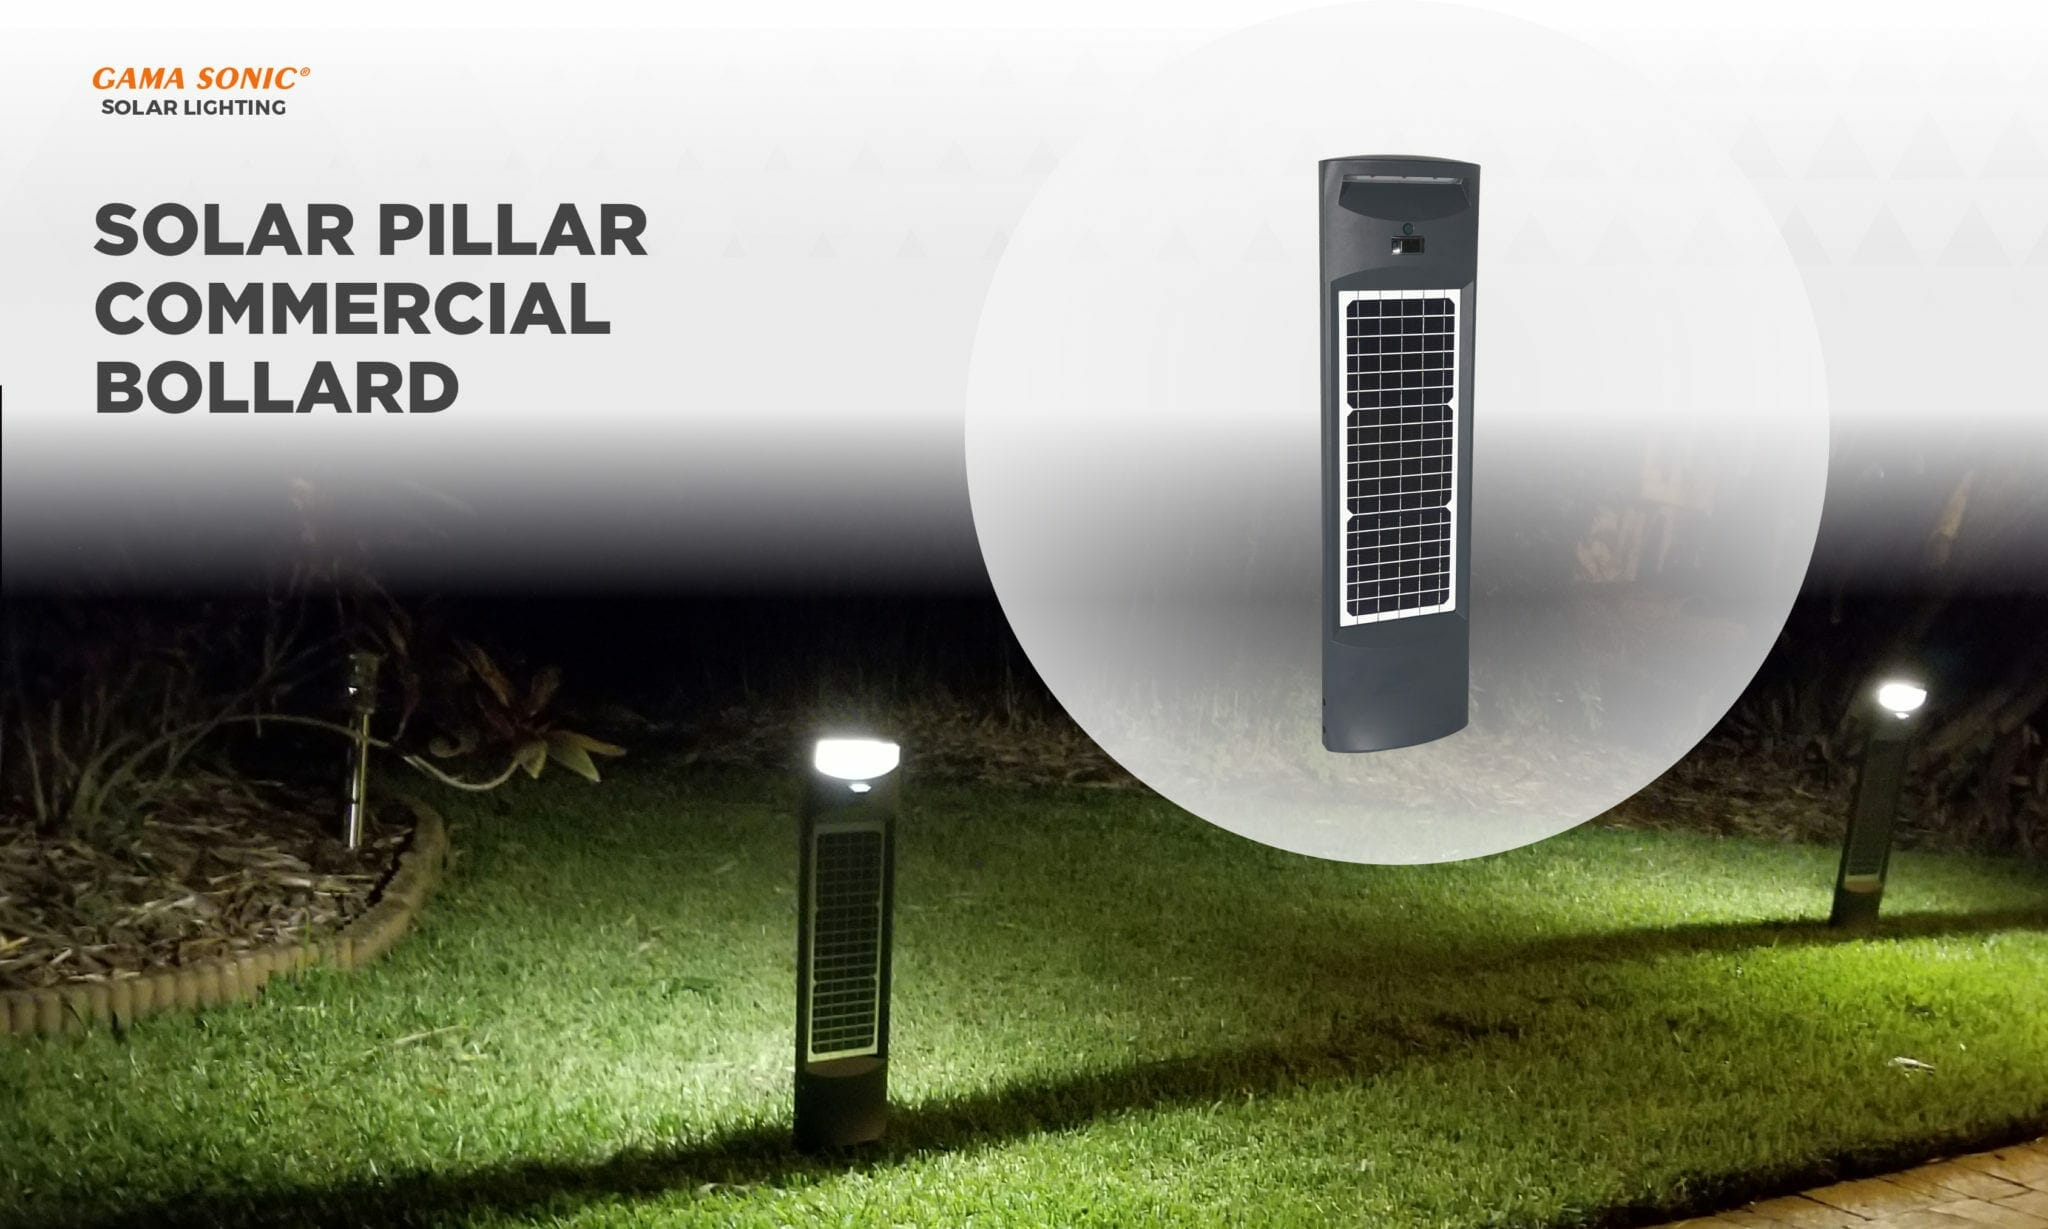 Highlight High Foot Traffic Areas with the Solar Pillar Commercial Bollard